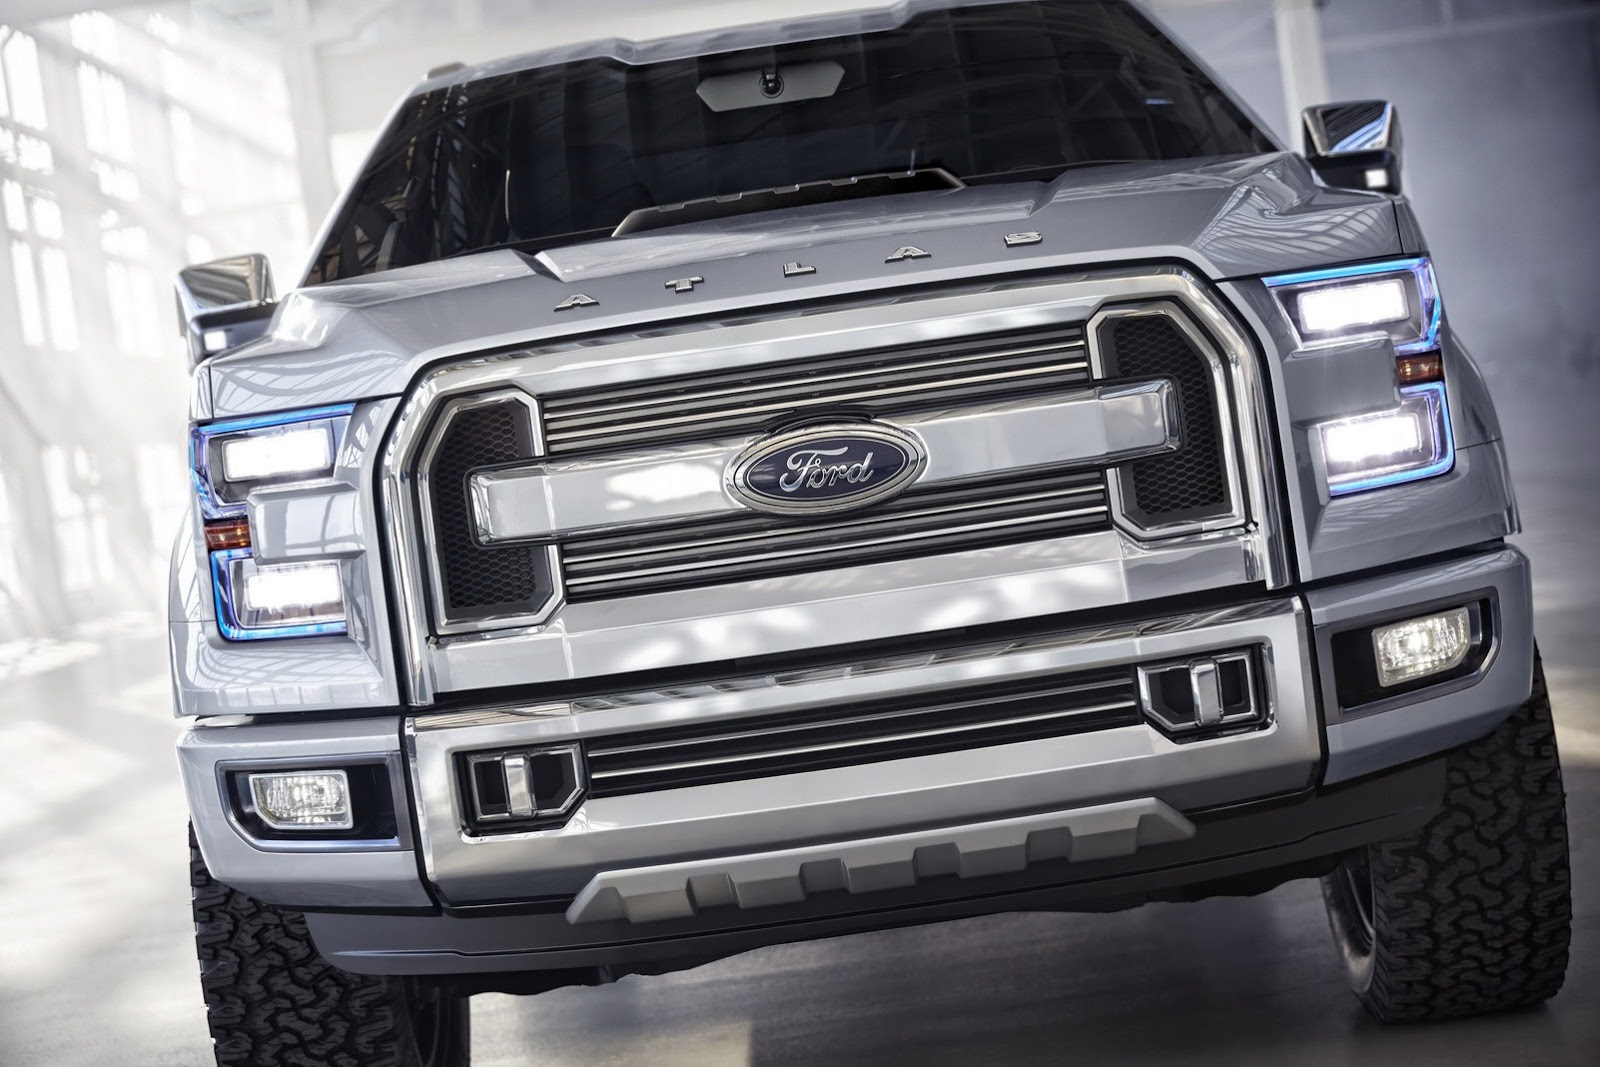 Ford Yanked The Covers Off A Replacement Conception Model At 2017 Detroit Automobile Show On Weekday Morning Showcasing Brand S Evolved Styling